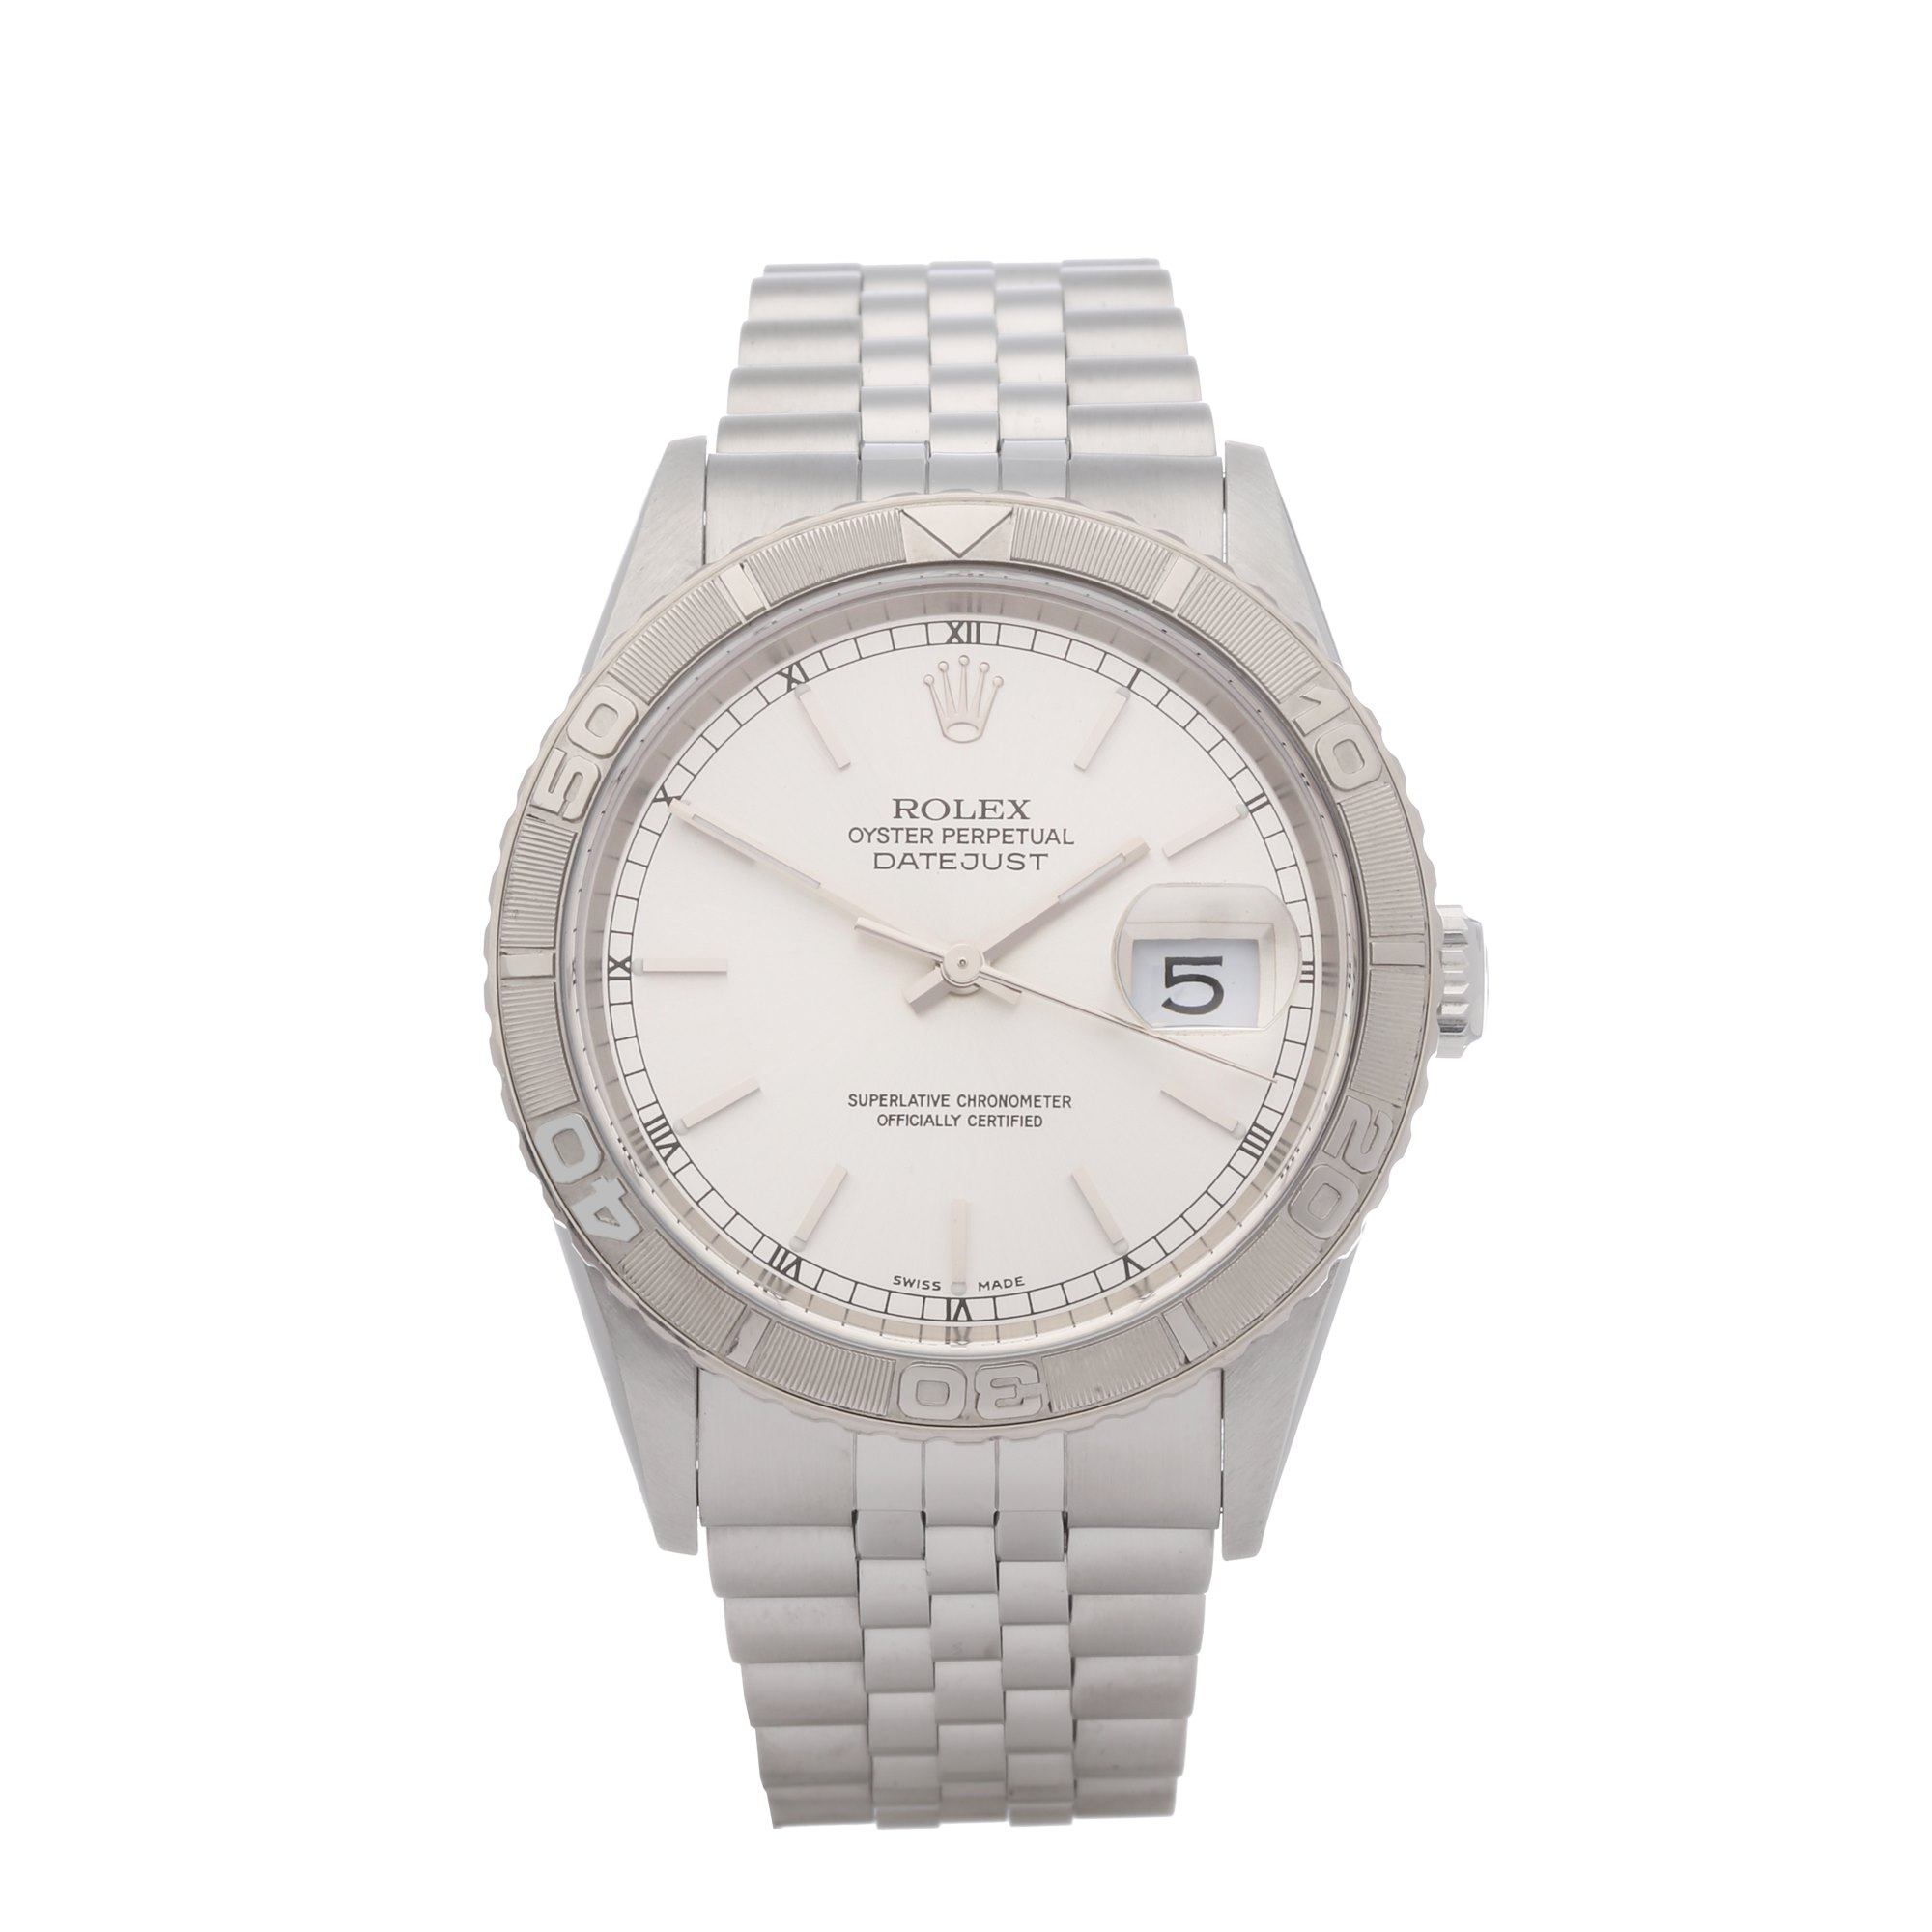 Rolex Datejust 36 Turn o Graph Stainless Steel 16264